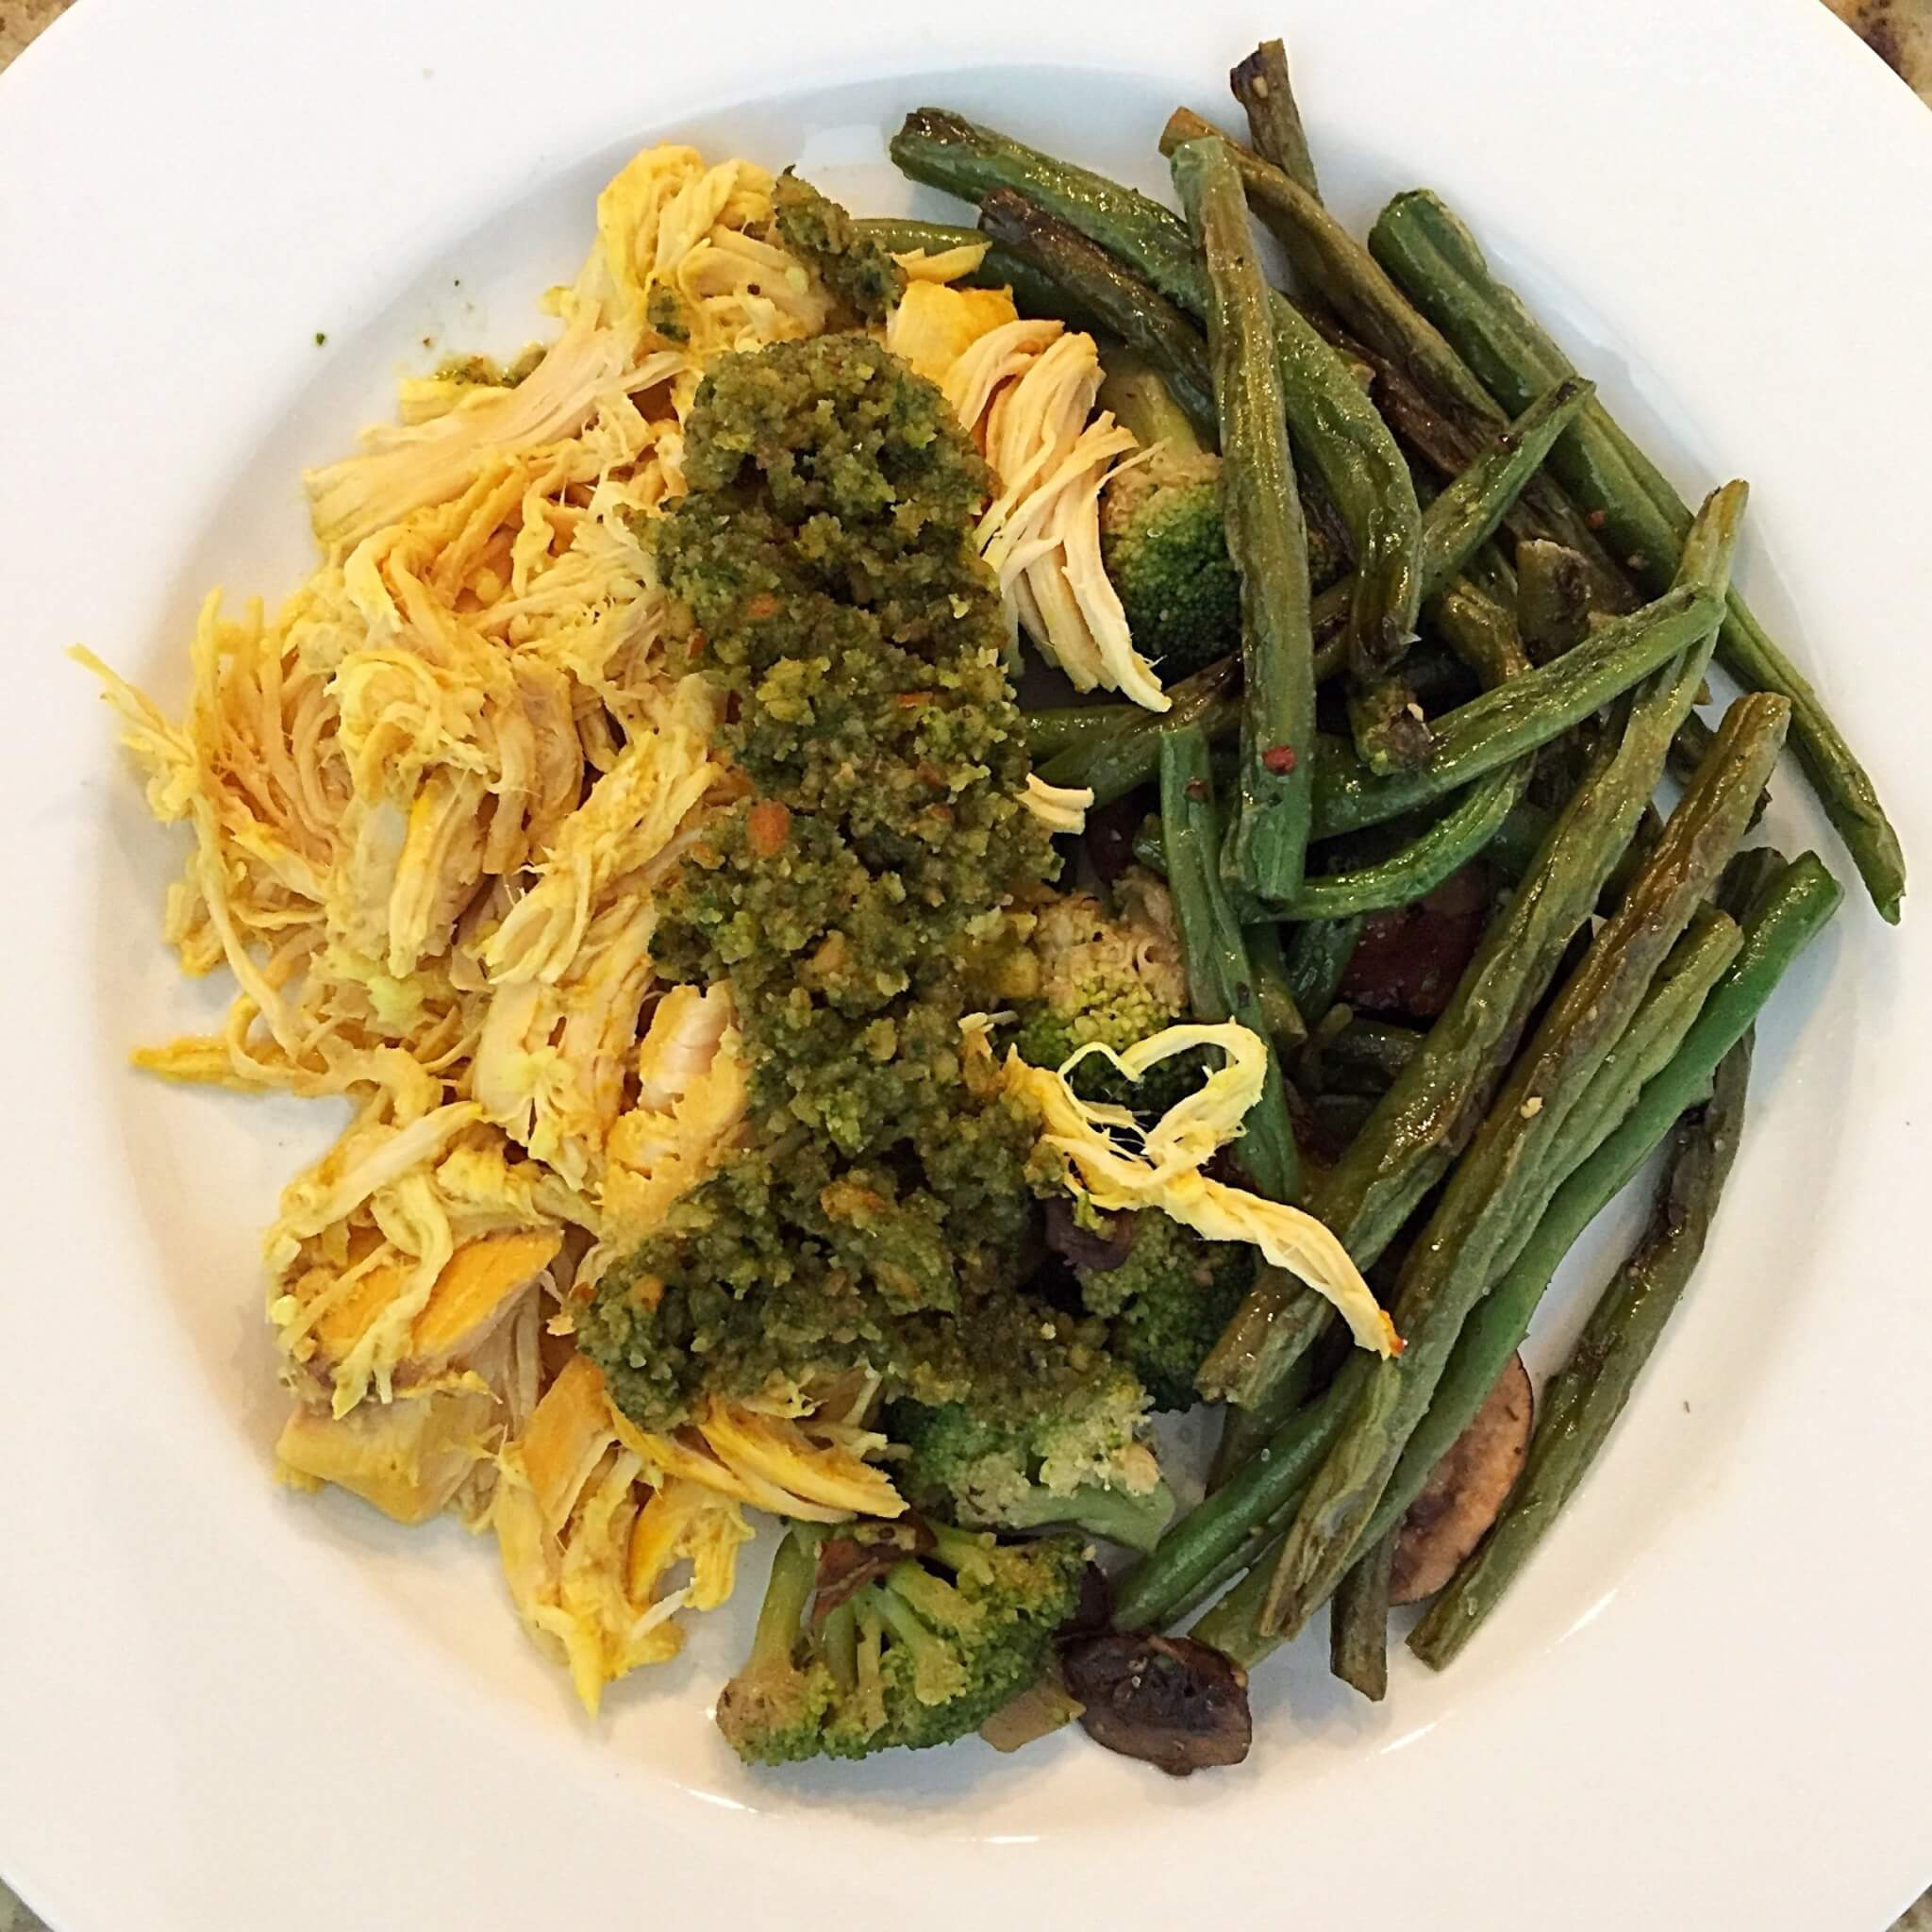 Turmeric Shredded Chicken with Pesto and green beans